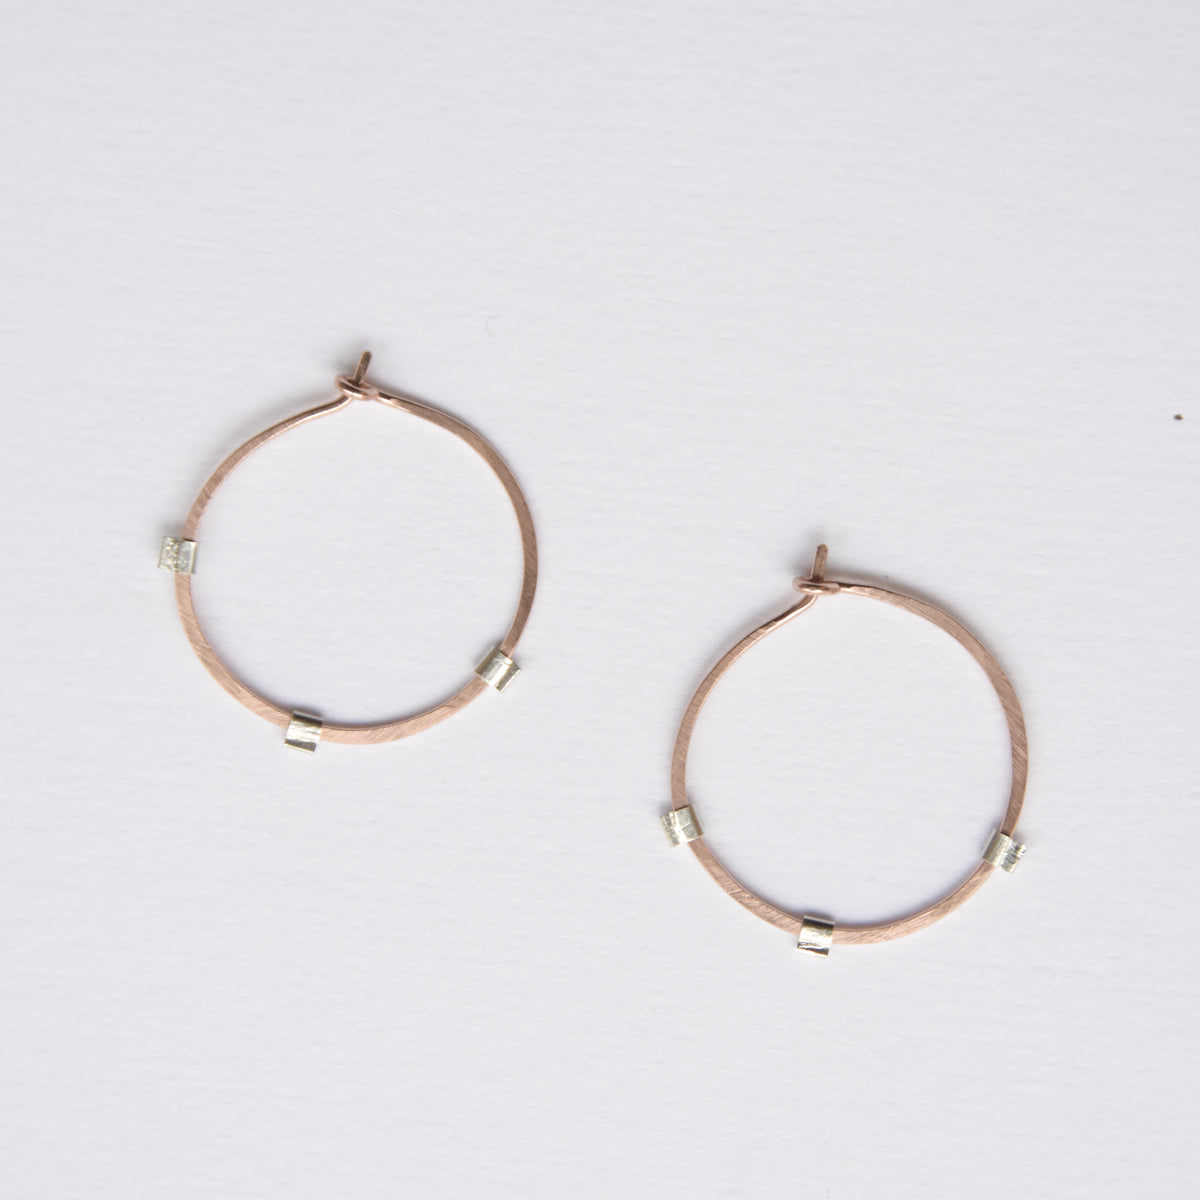 Modern hoop earrings for going out. Rose gold earrings for Valentine's Day, Feb 14th jewelry gift